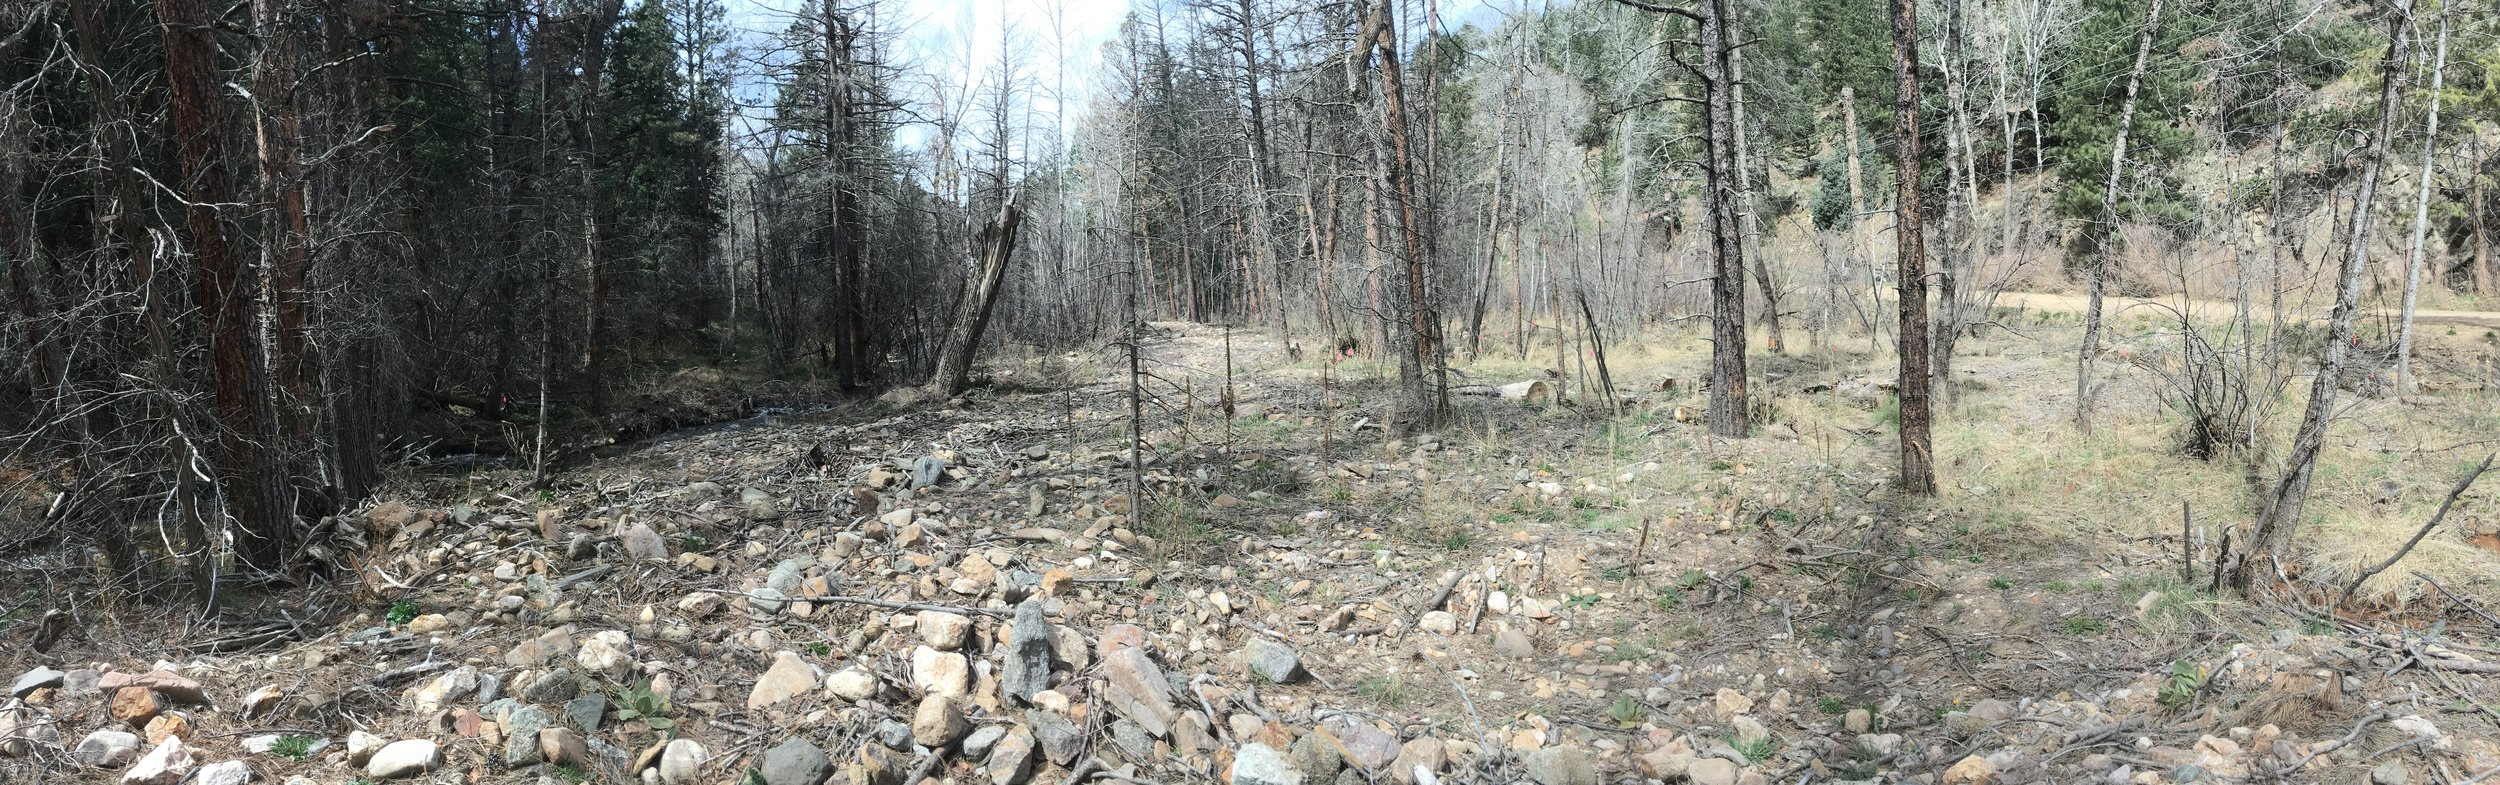 Before Construction: The former creek corridor filled and covered with flood deposits. Sediment from several debris flows was deposited in this reach, filling in the creek channel and causing an avulsion; the creek is in the shadows on the far left of the photo (April 2017).